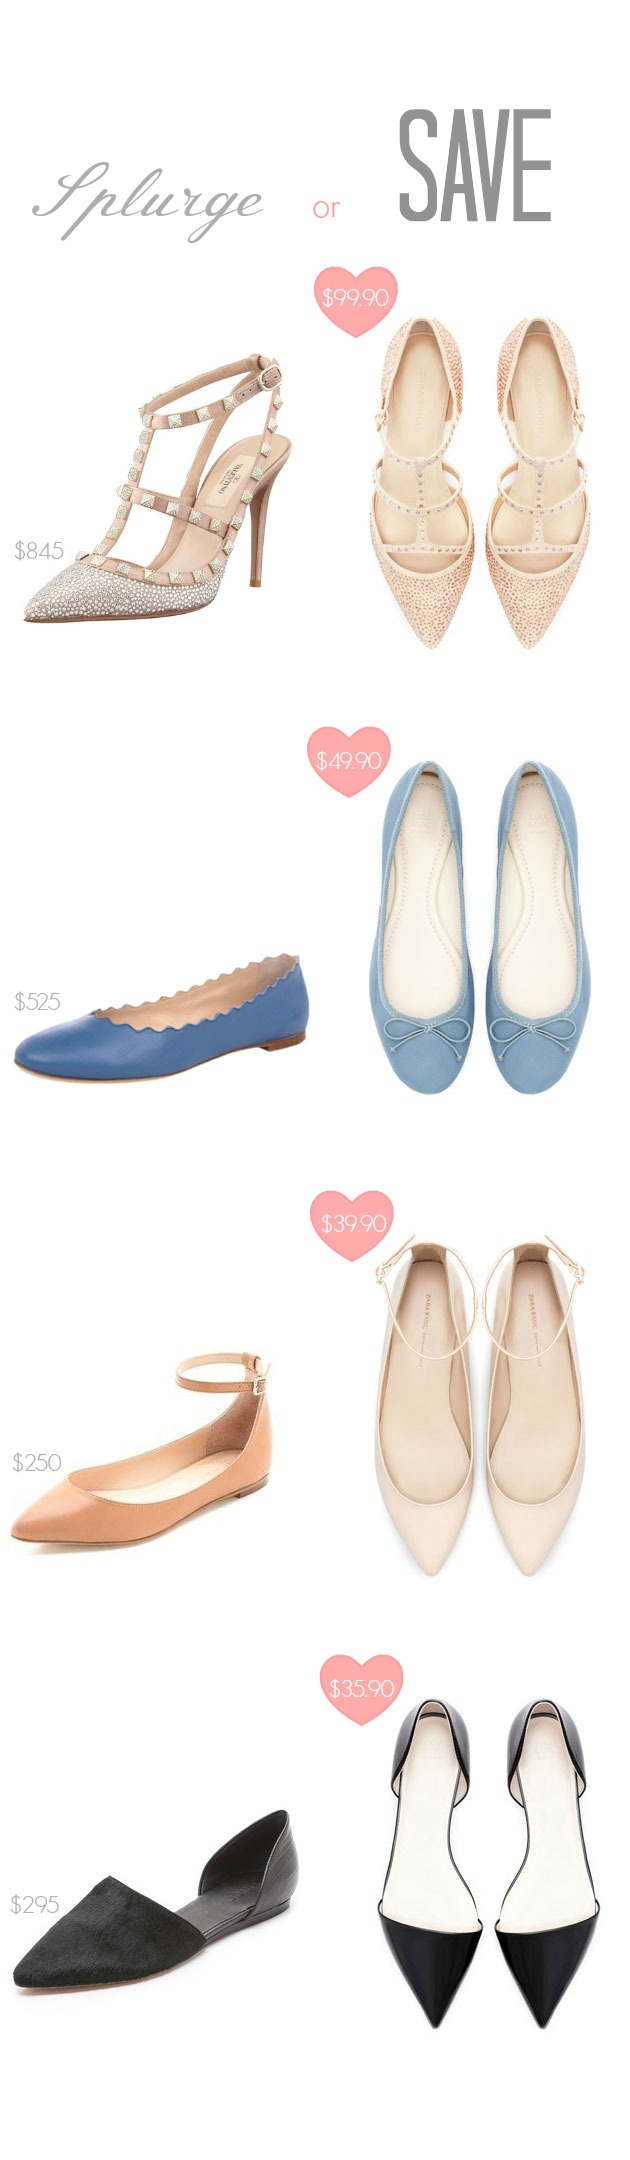 Splurge or Save: The Flats Edition